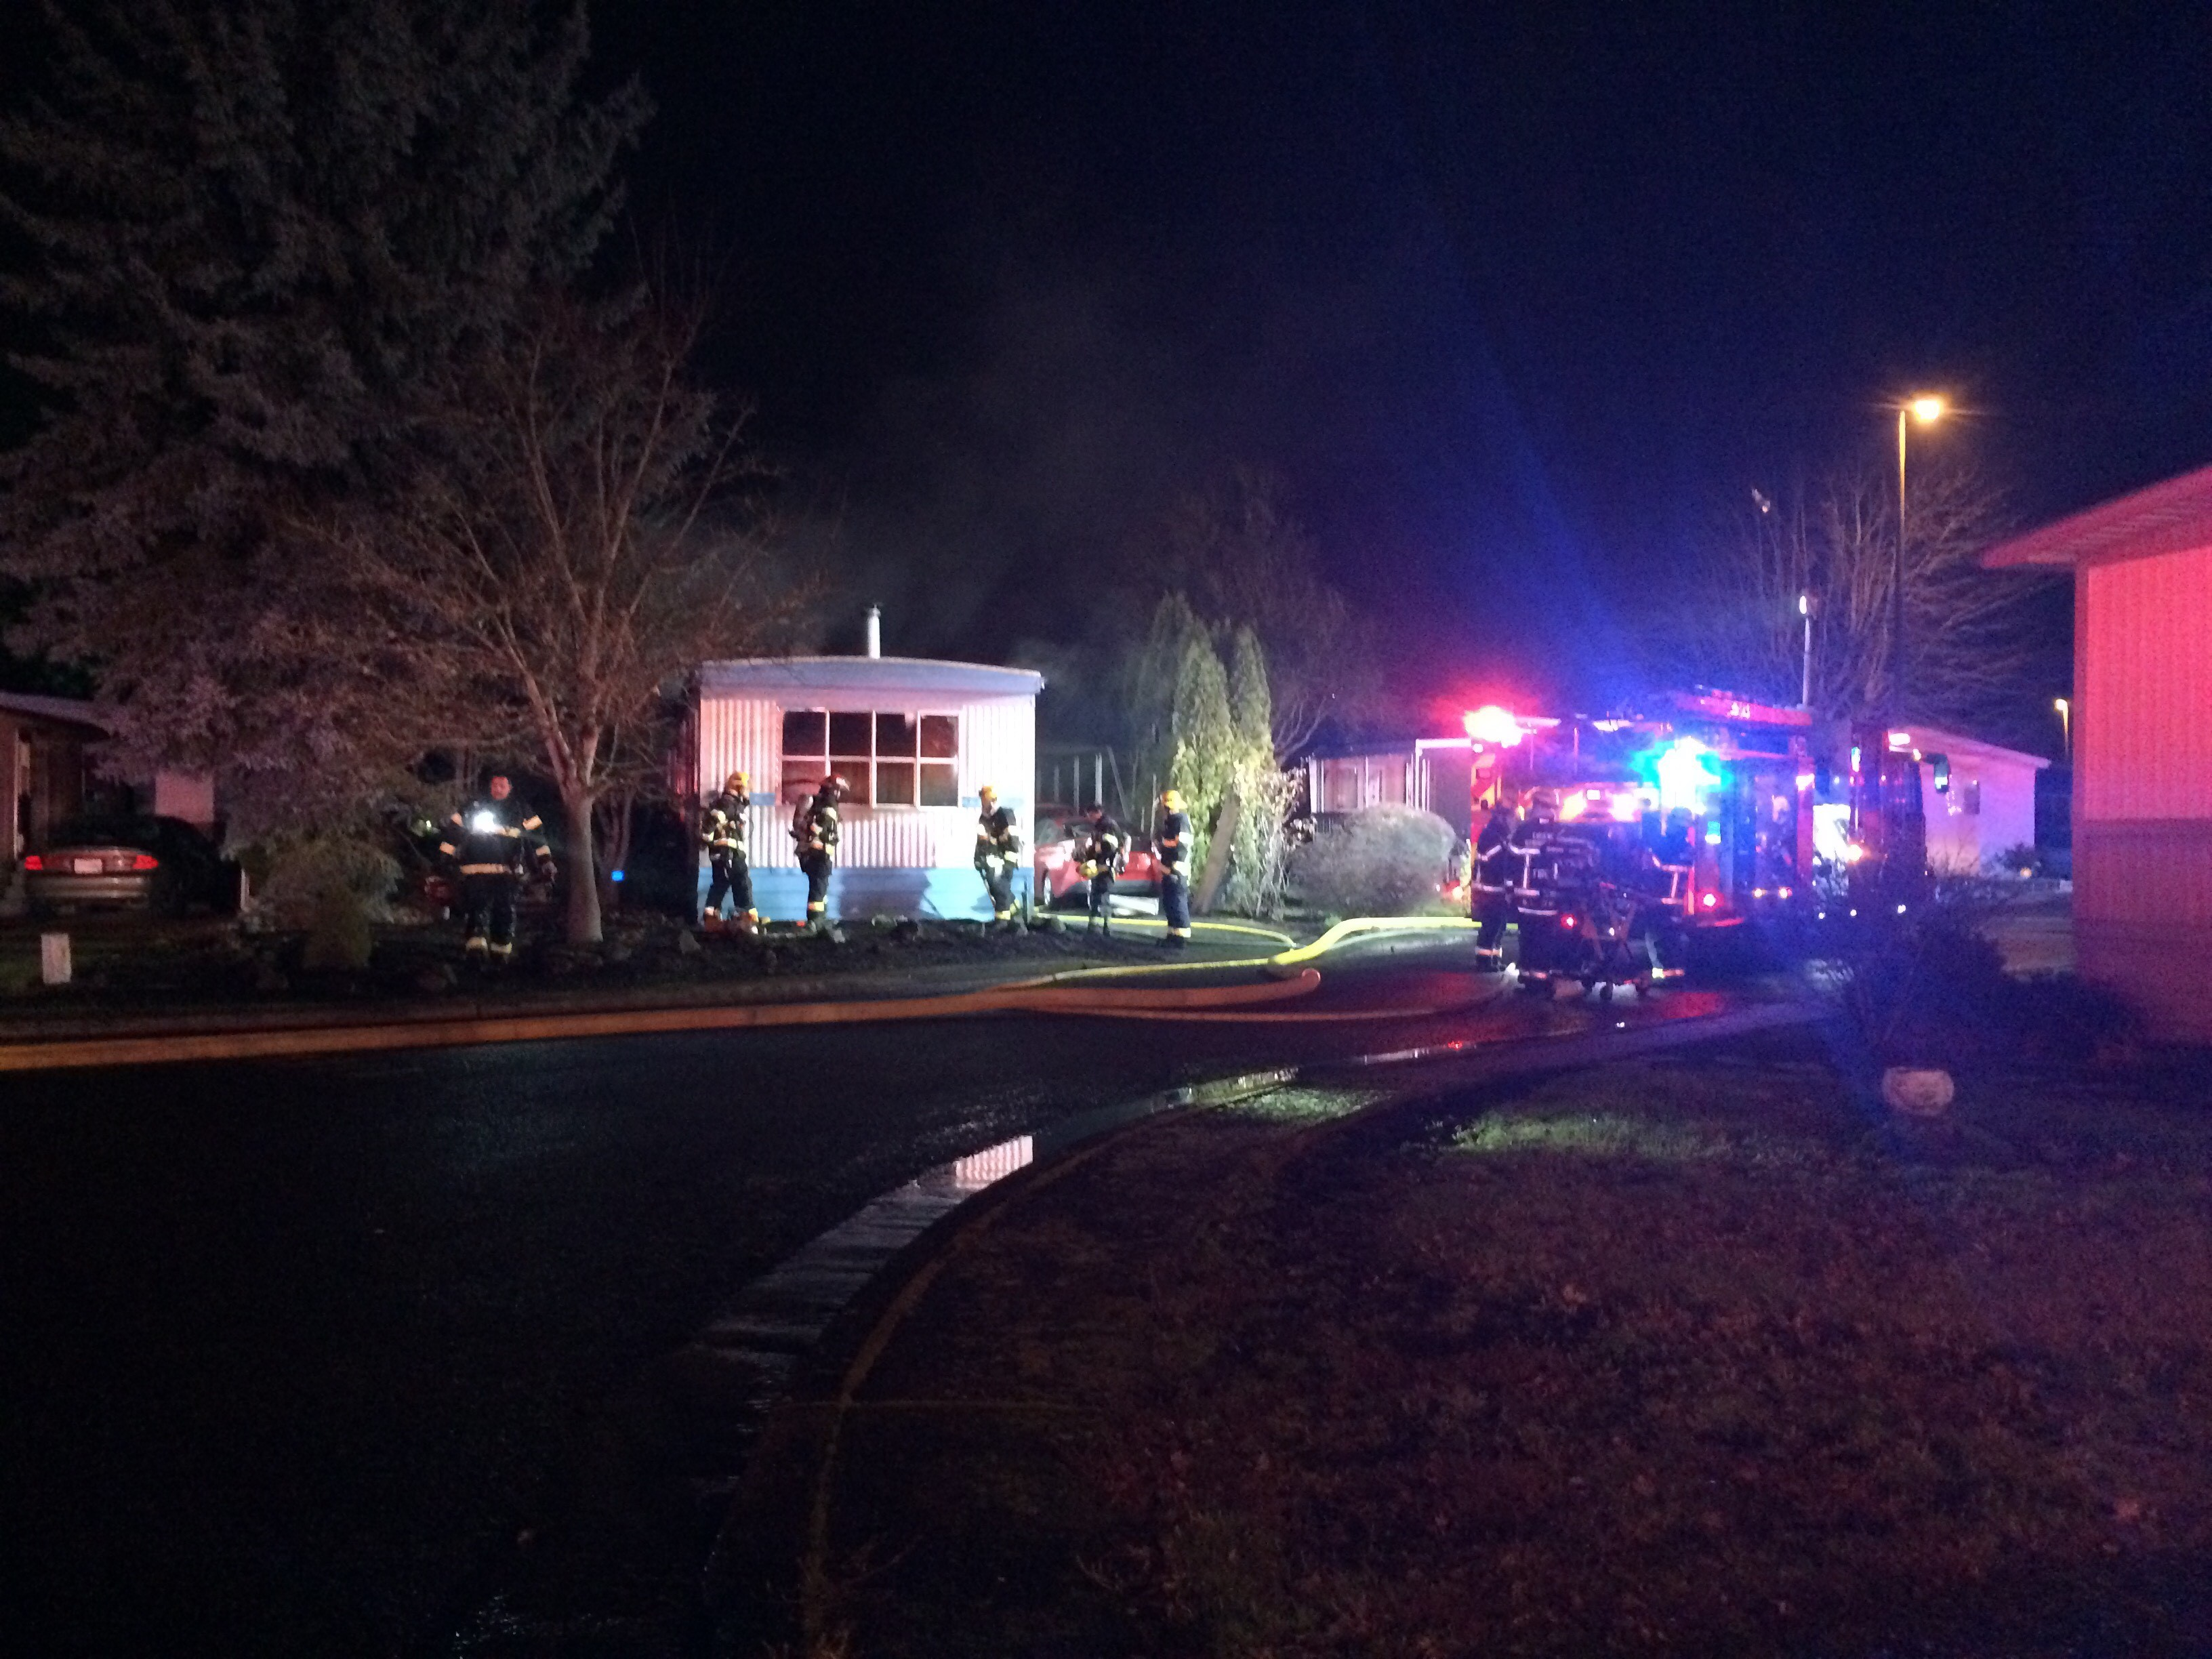 <p>A mobile home fire happened around 9 p.m. at the Daneland Mobile Home Park at 1199 Terry Street in Eugene, Dec. 26, 2017. (SBG)</p>